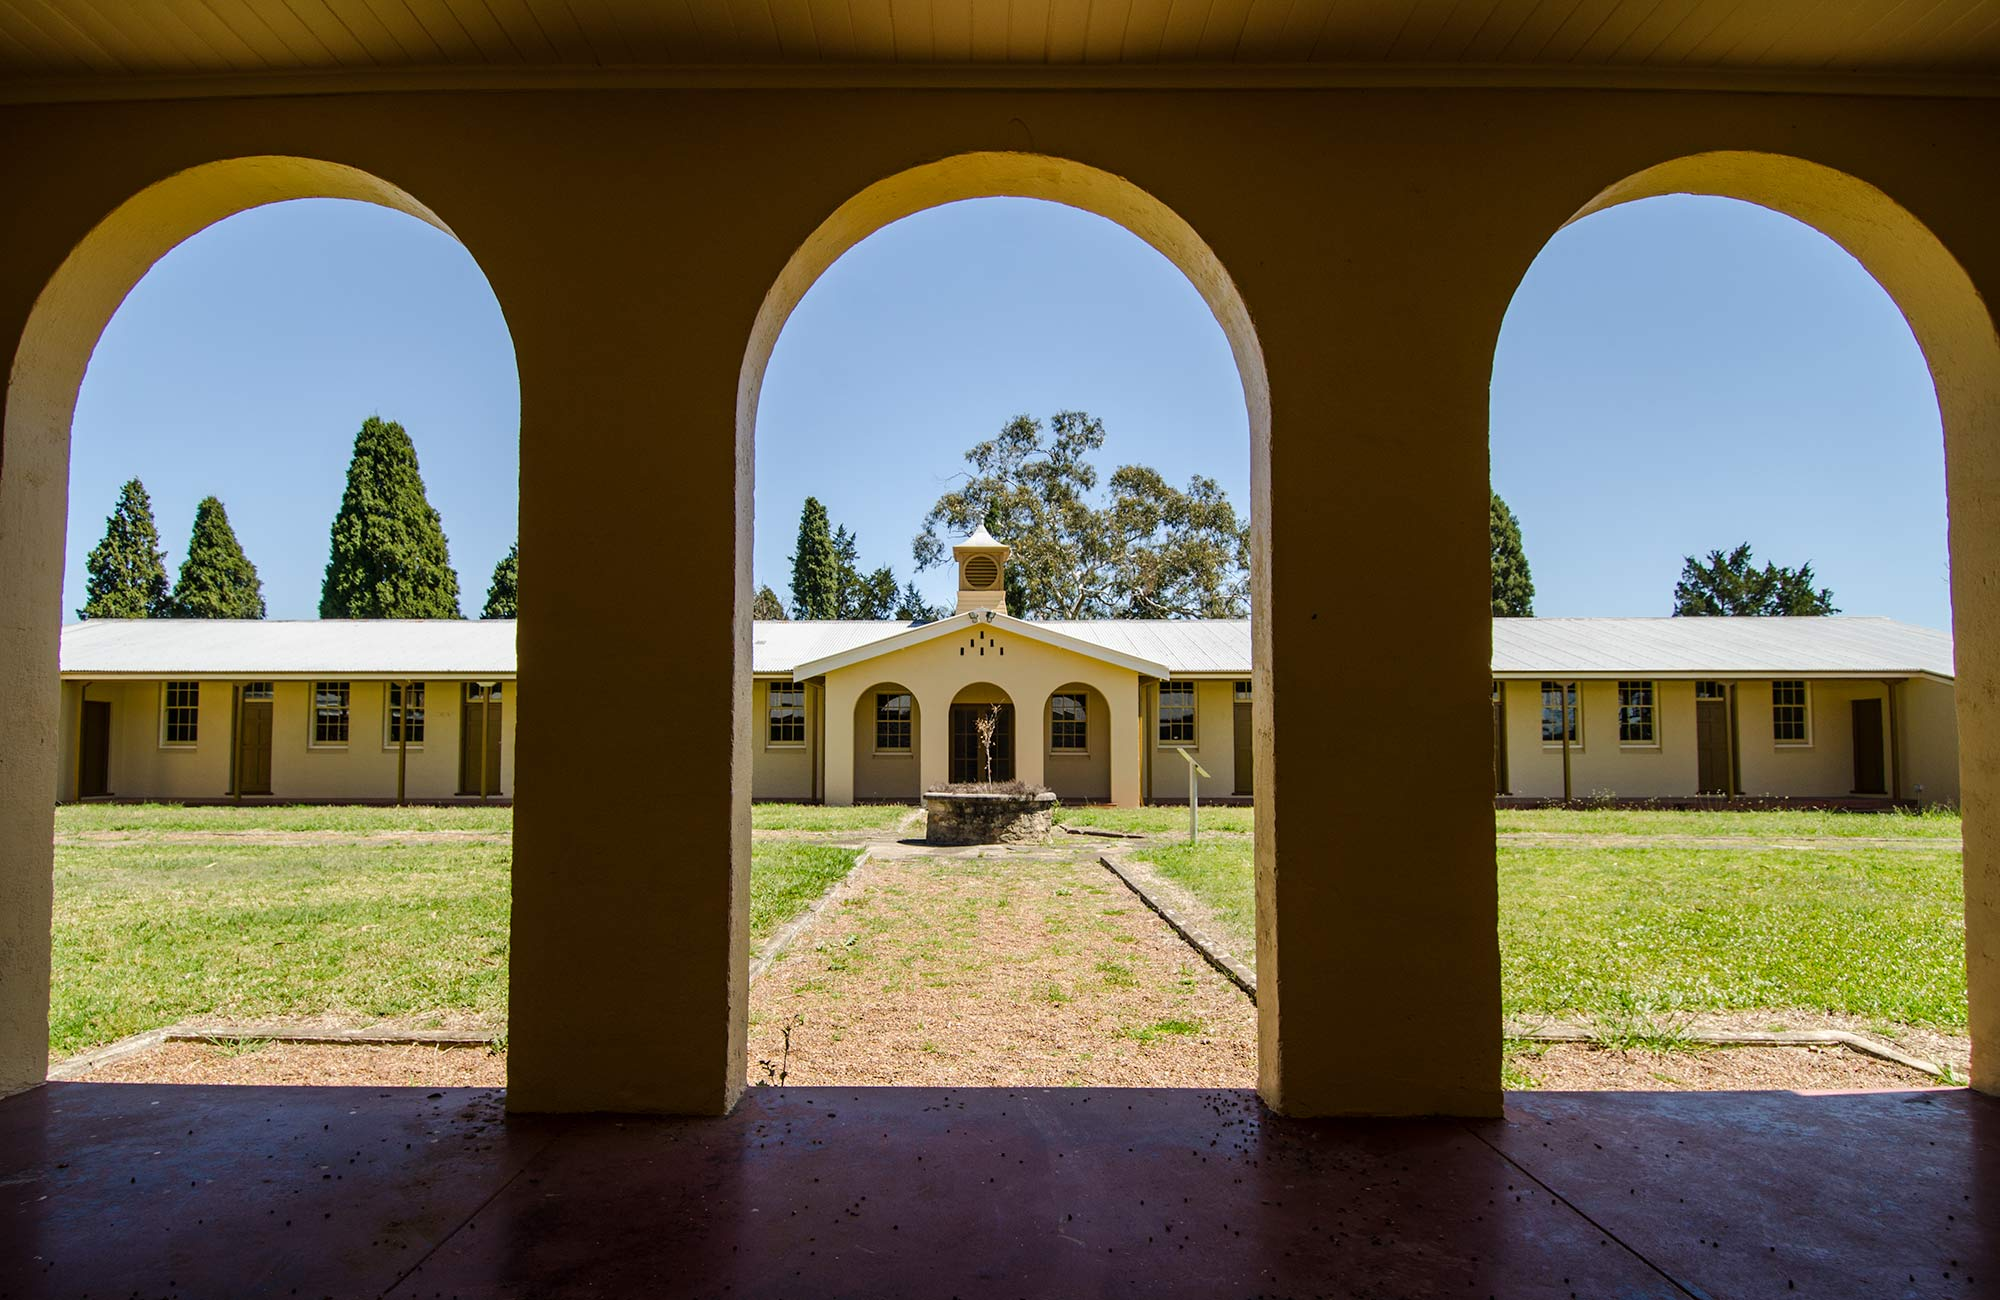 Restored Heritage Building, Scheyville National Park. Photo: John Spencer